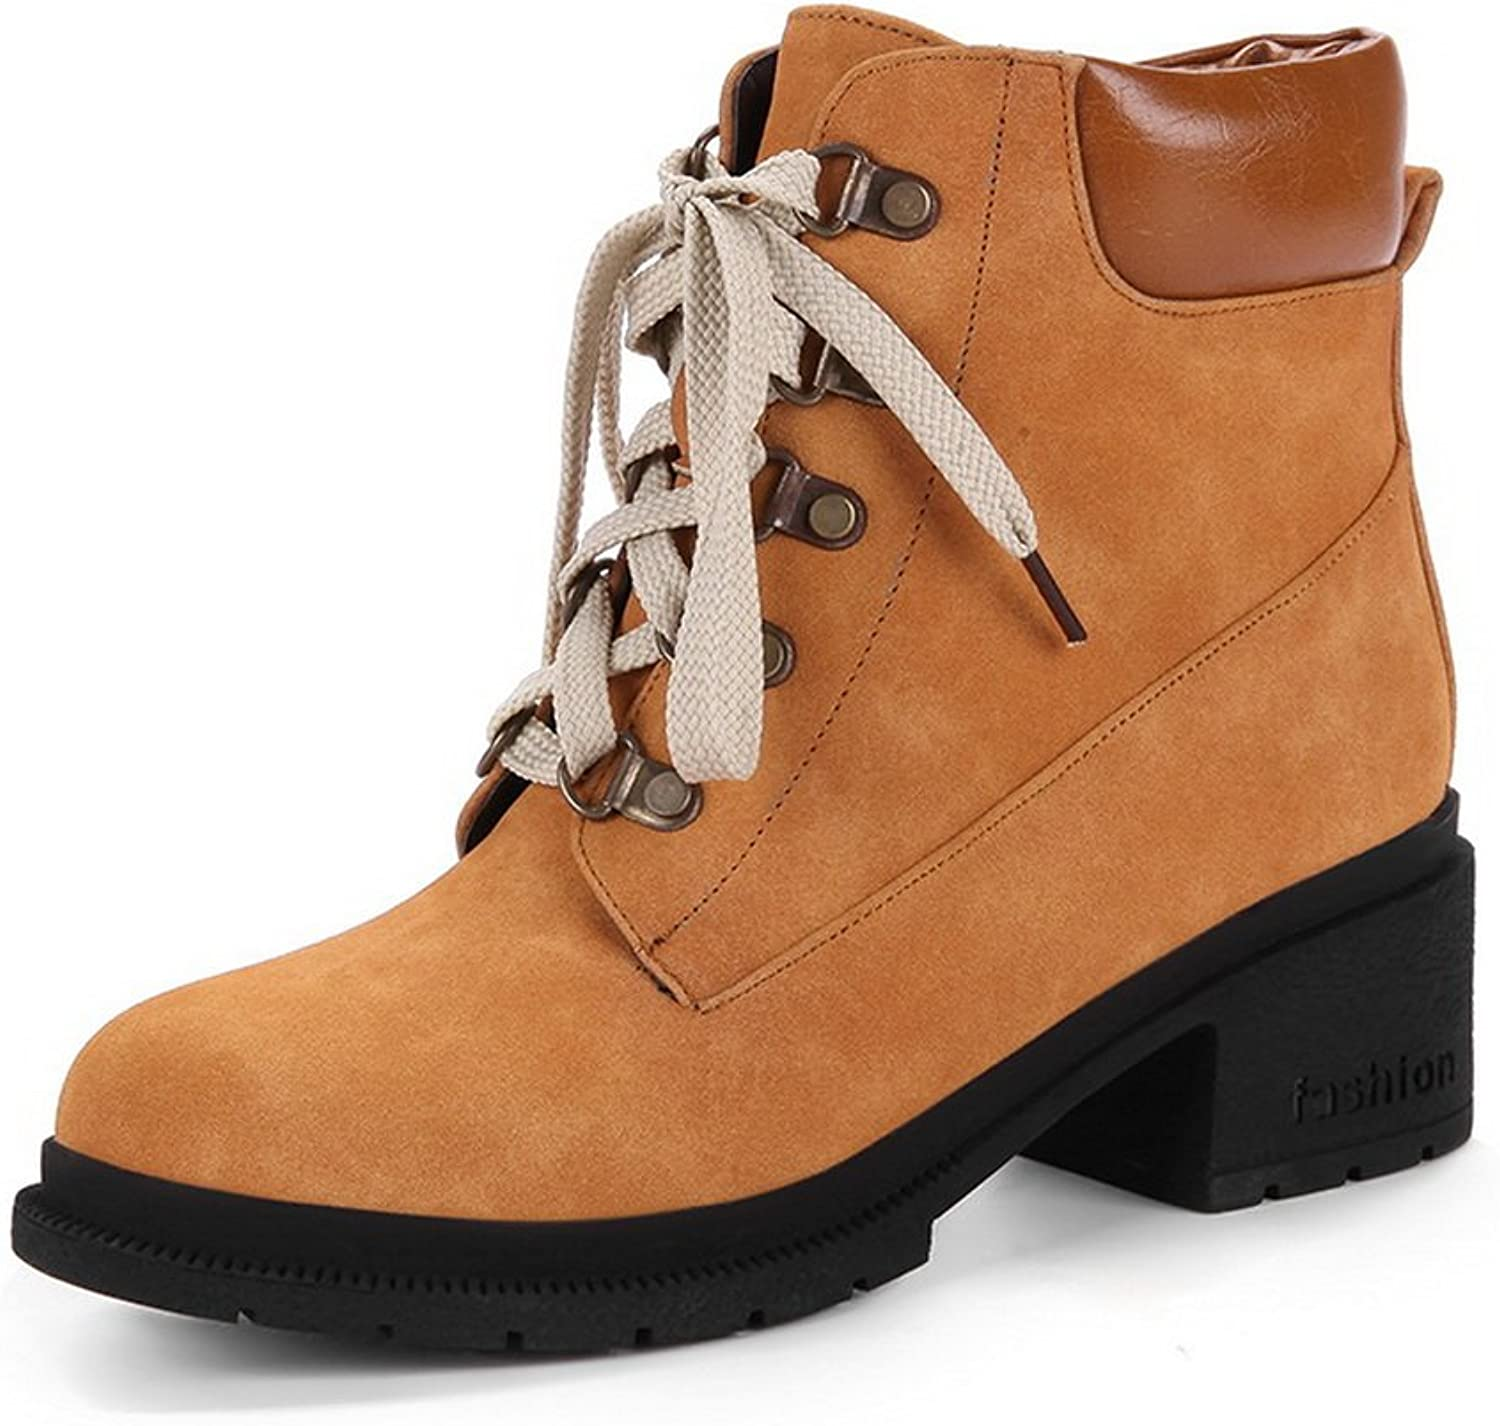 AandN Womens Boots Closed-Toe Lace-Up Adjustable-Strap High-Heel Warm Lining Water_Resistant Nubuck Bootie Soft-Toe Urethane Boots DKU01812